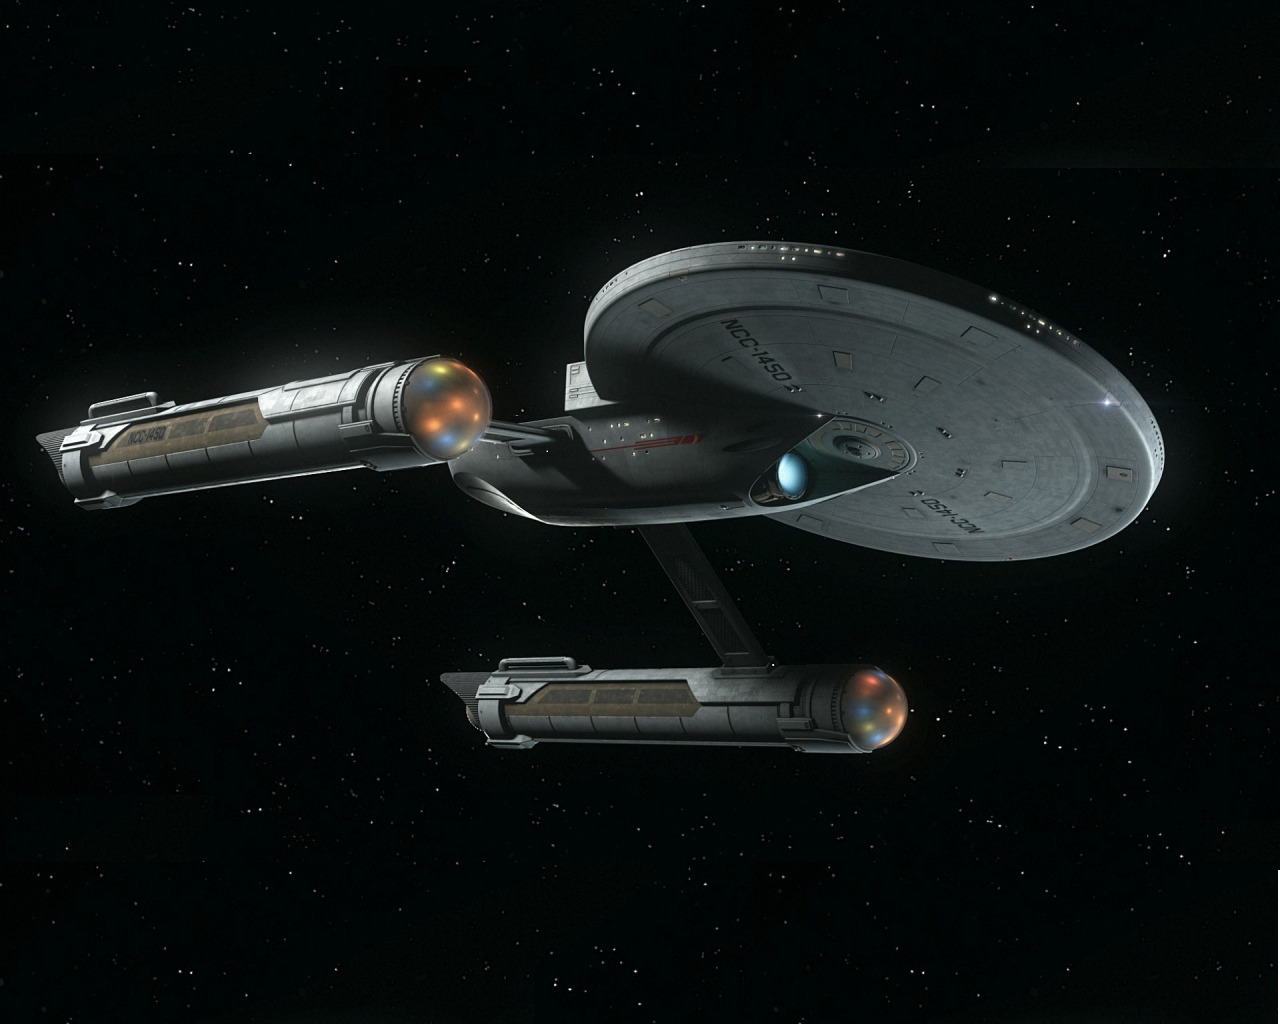 USS Ares 1